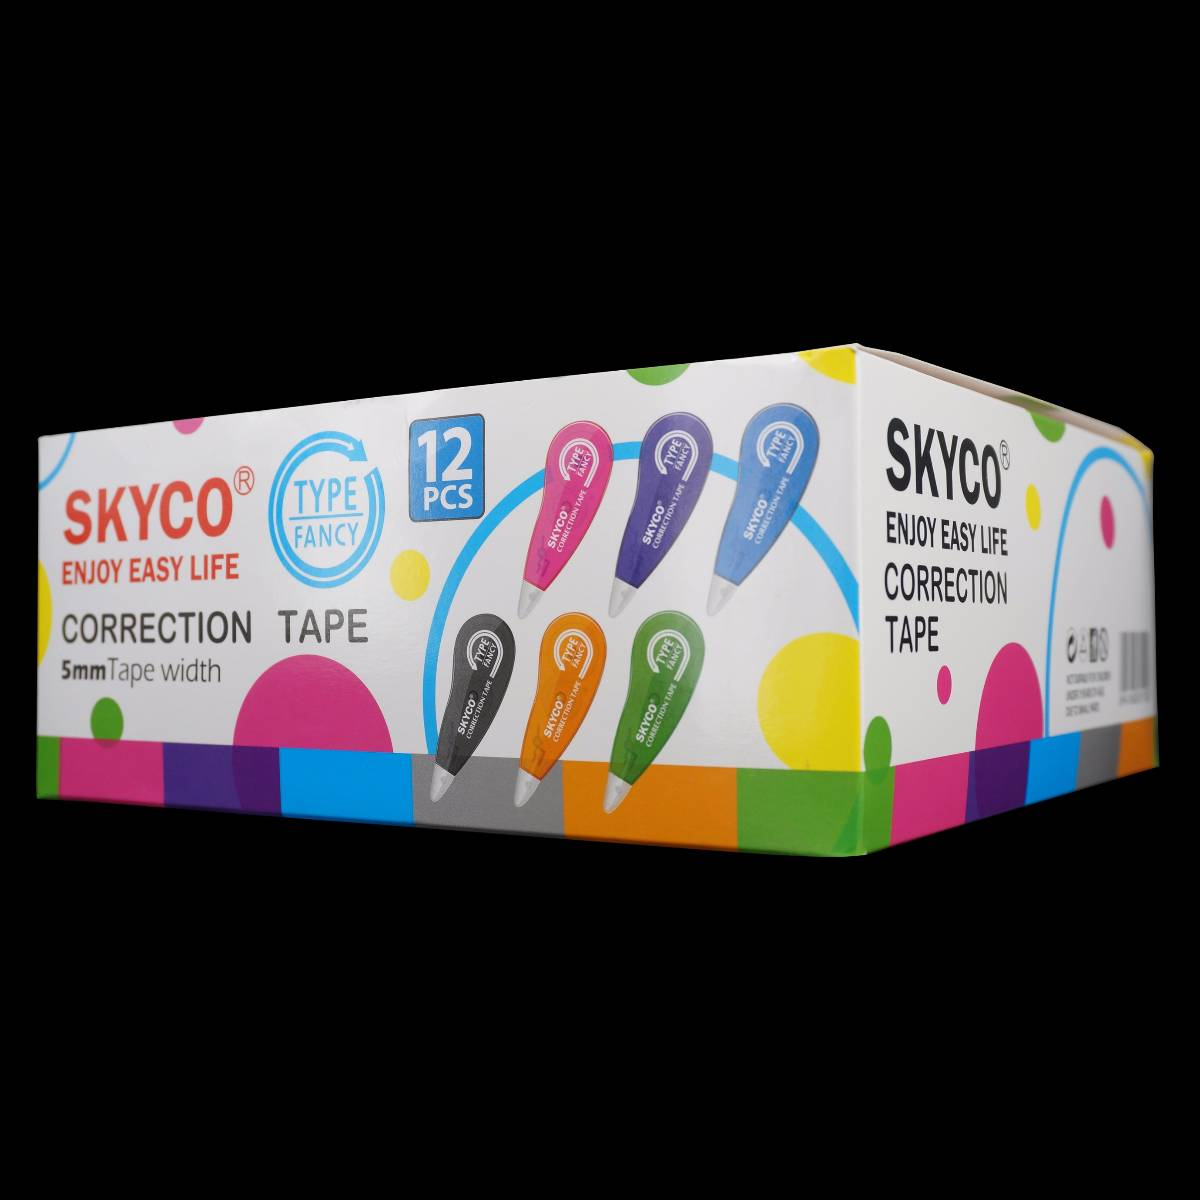 Correction Tape Skyco Fancy Per Lusin